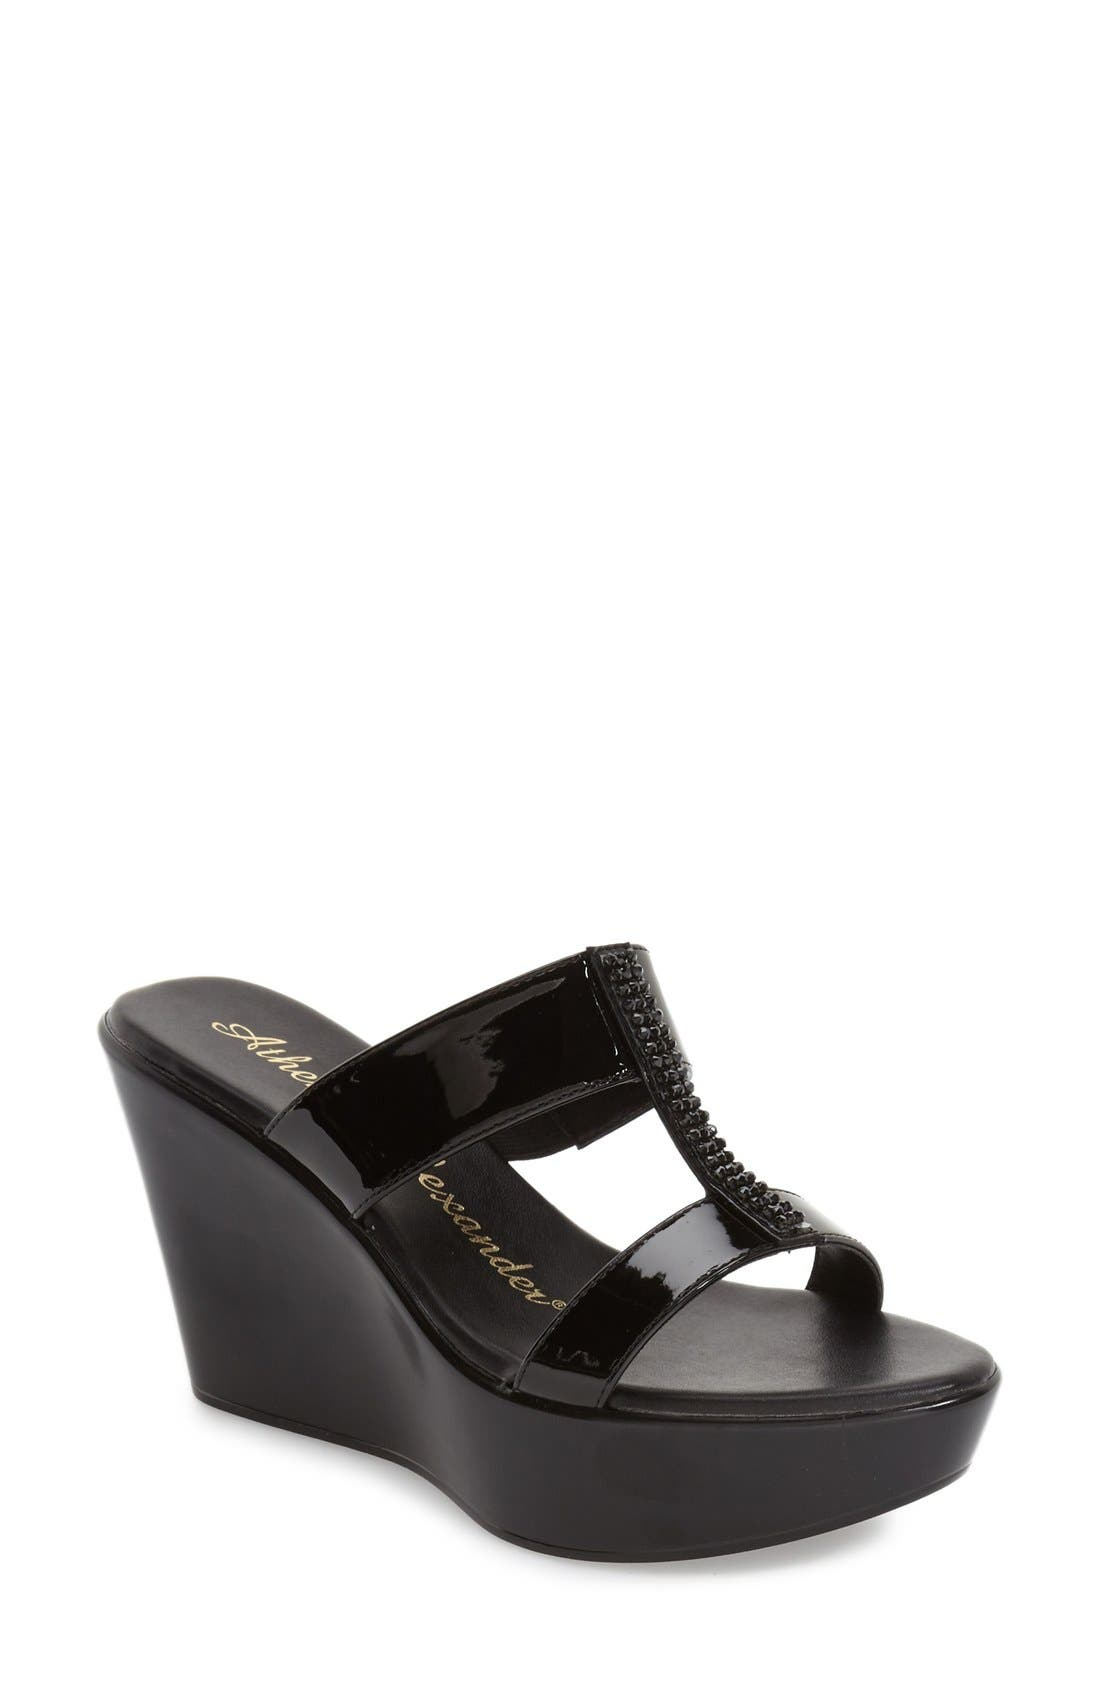 Athena Alexander 'Party' Wedge Sandal (Women)